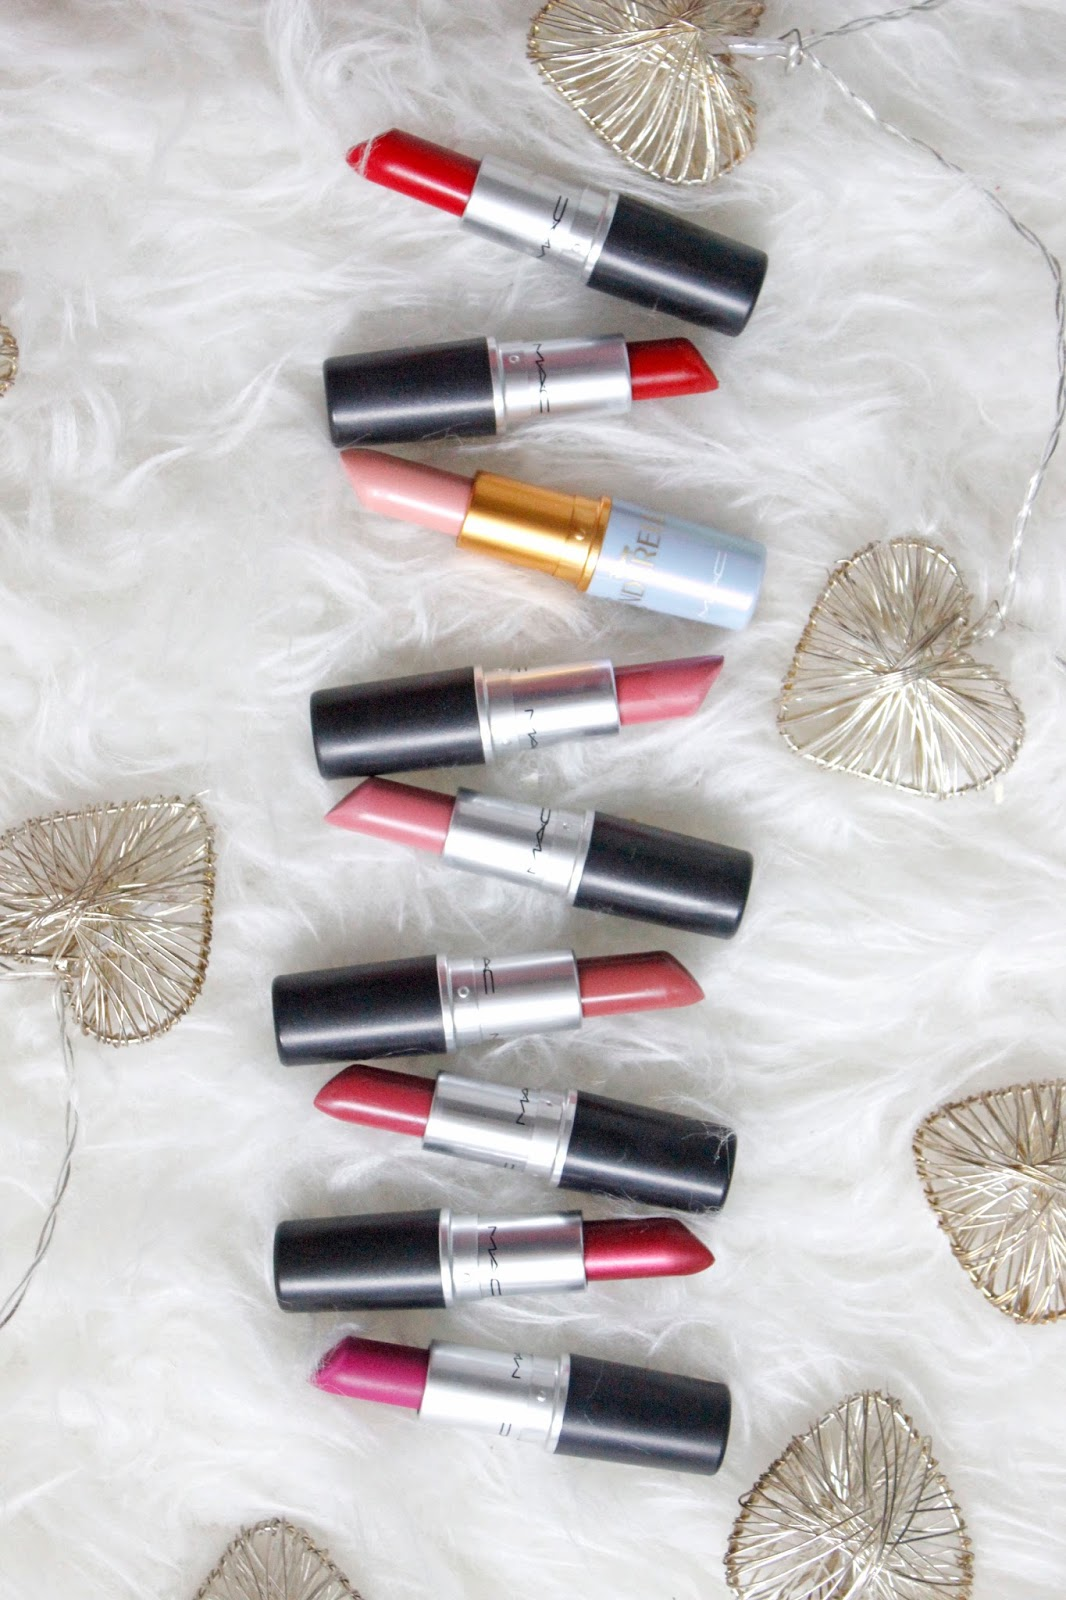 See The Stars - MAC lipstick collection